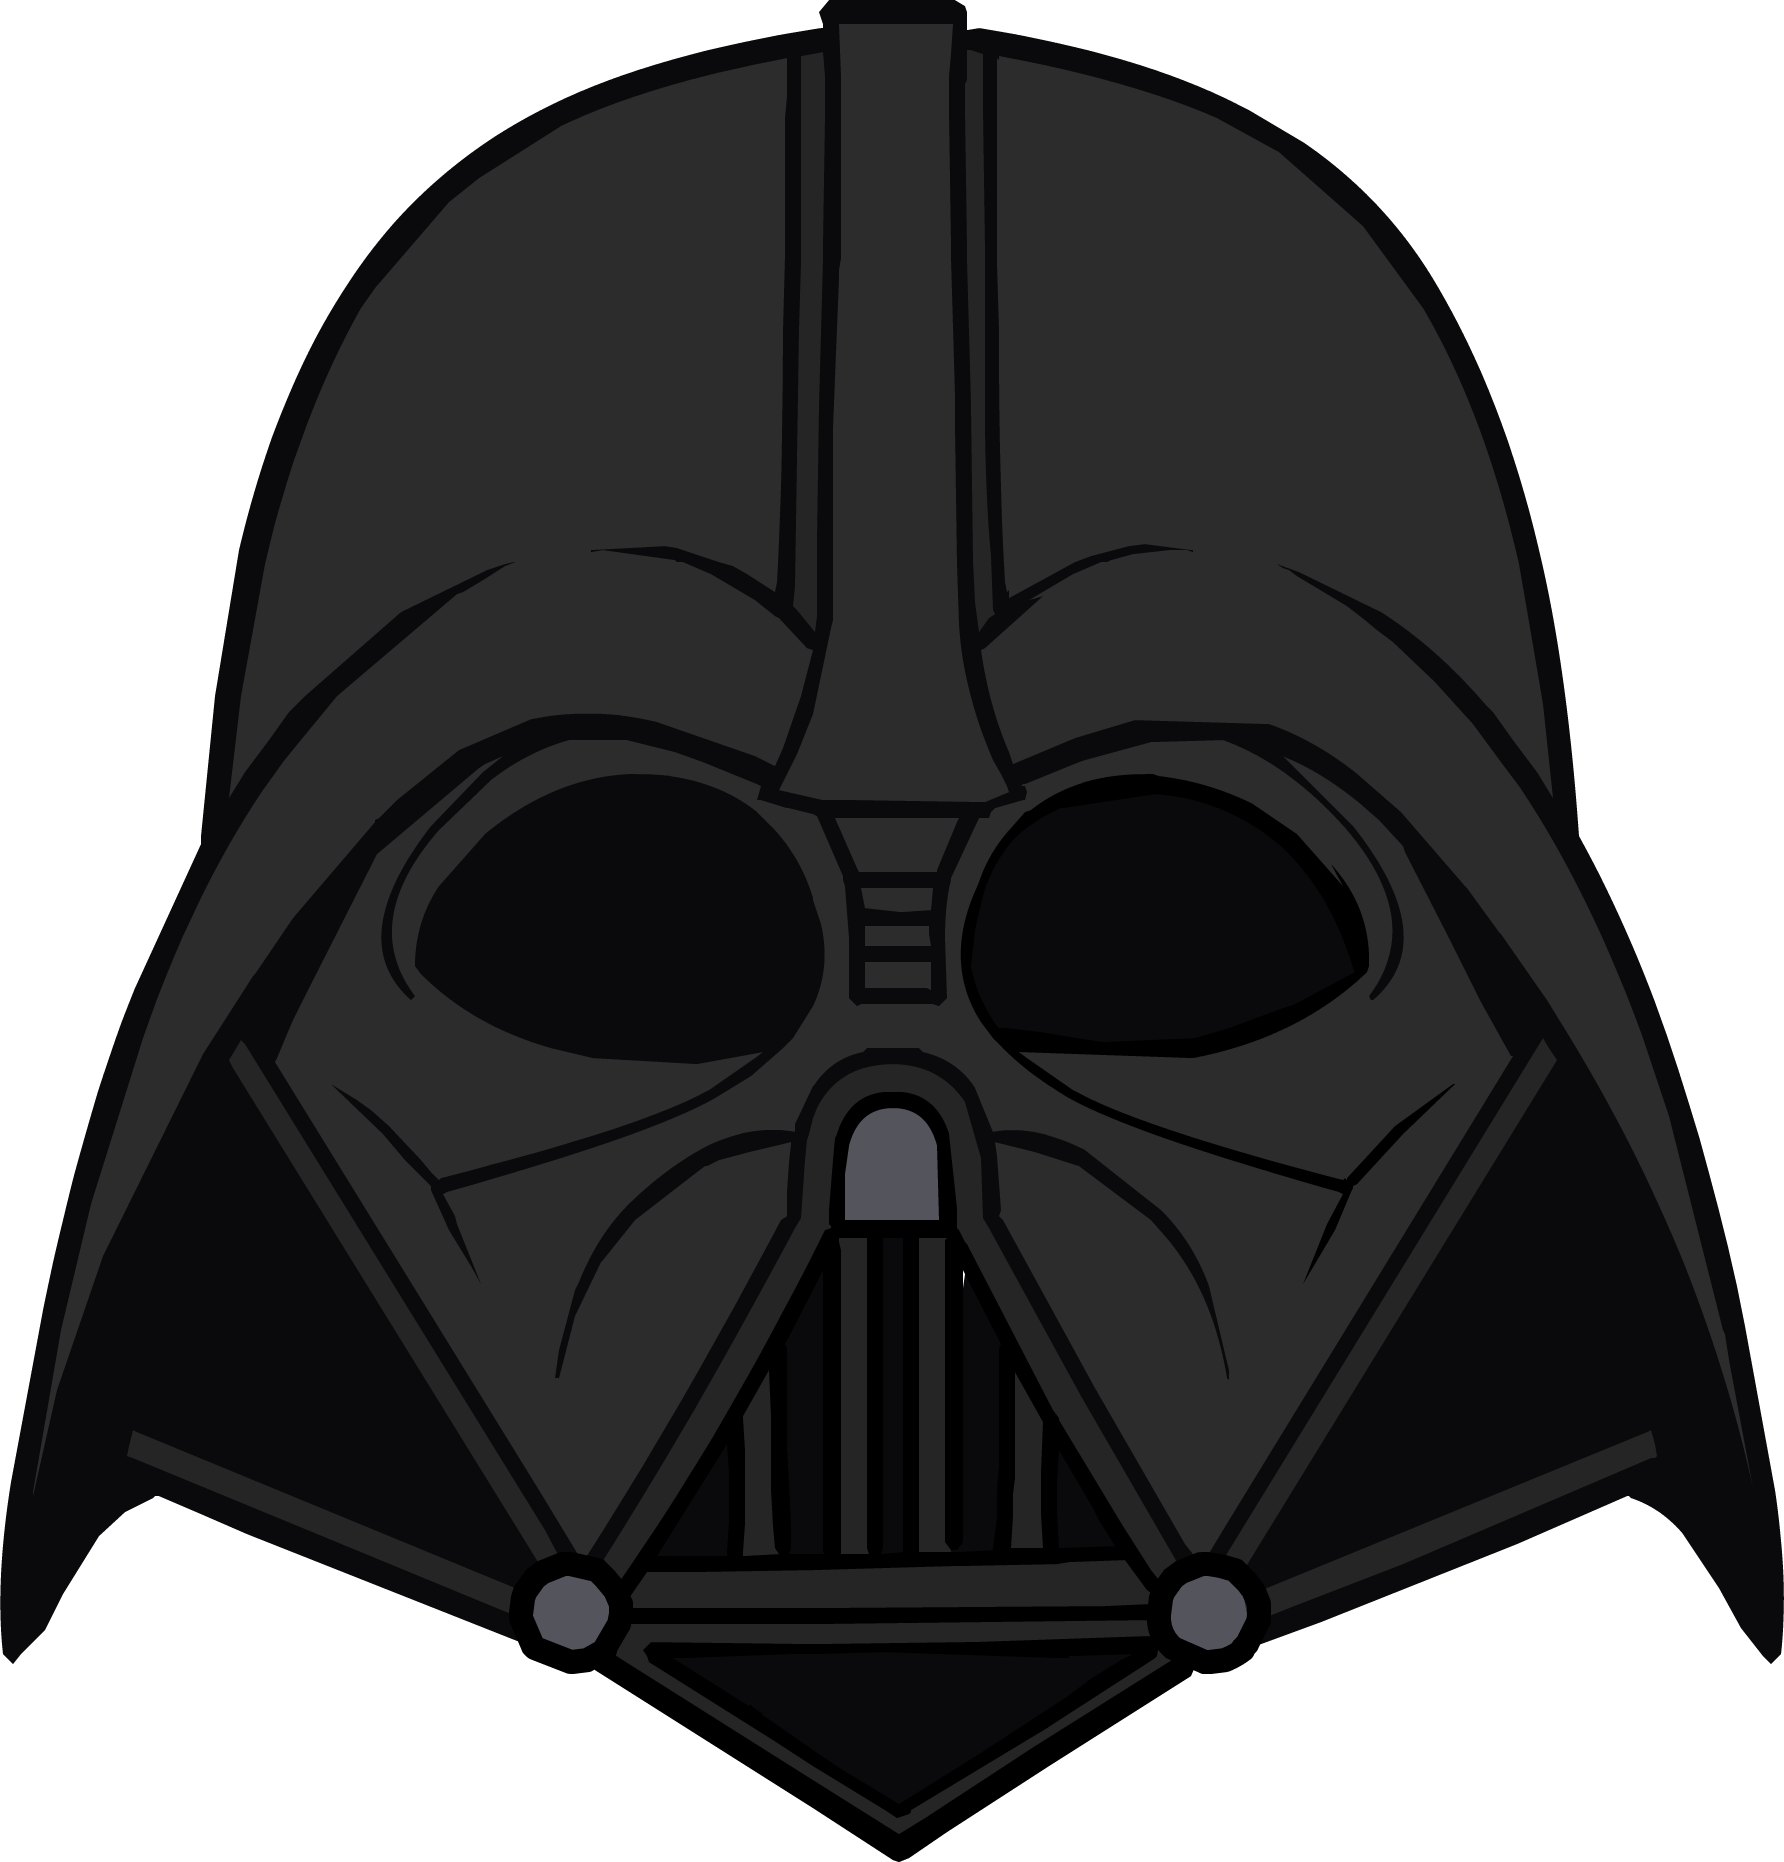 Darth Vader Helmet Club Penguin Wiki Fandom Powered By Wikia